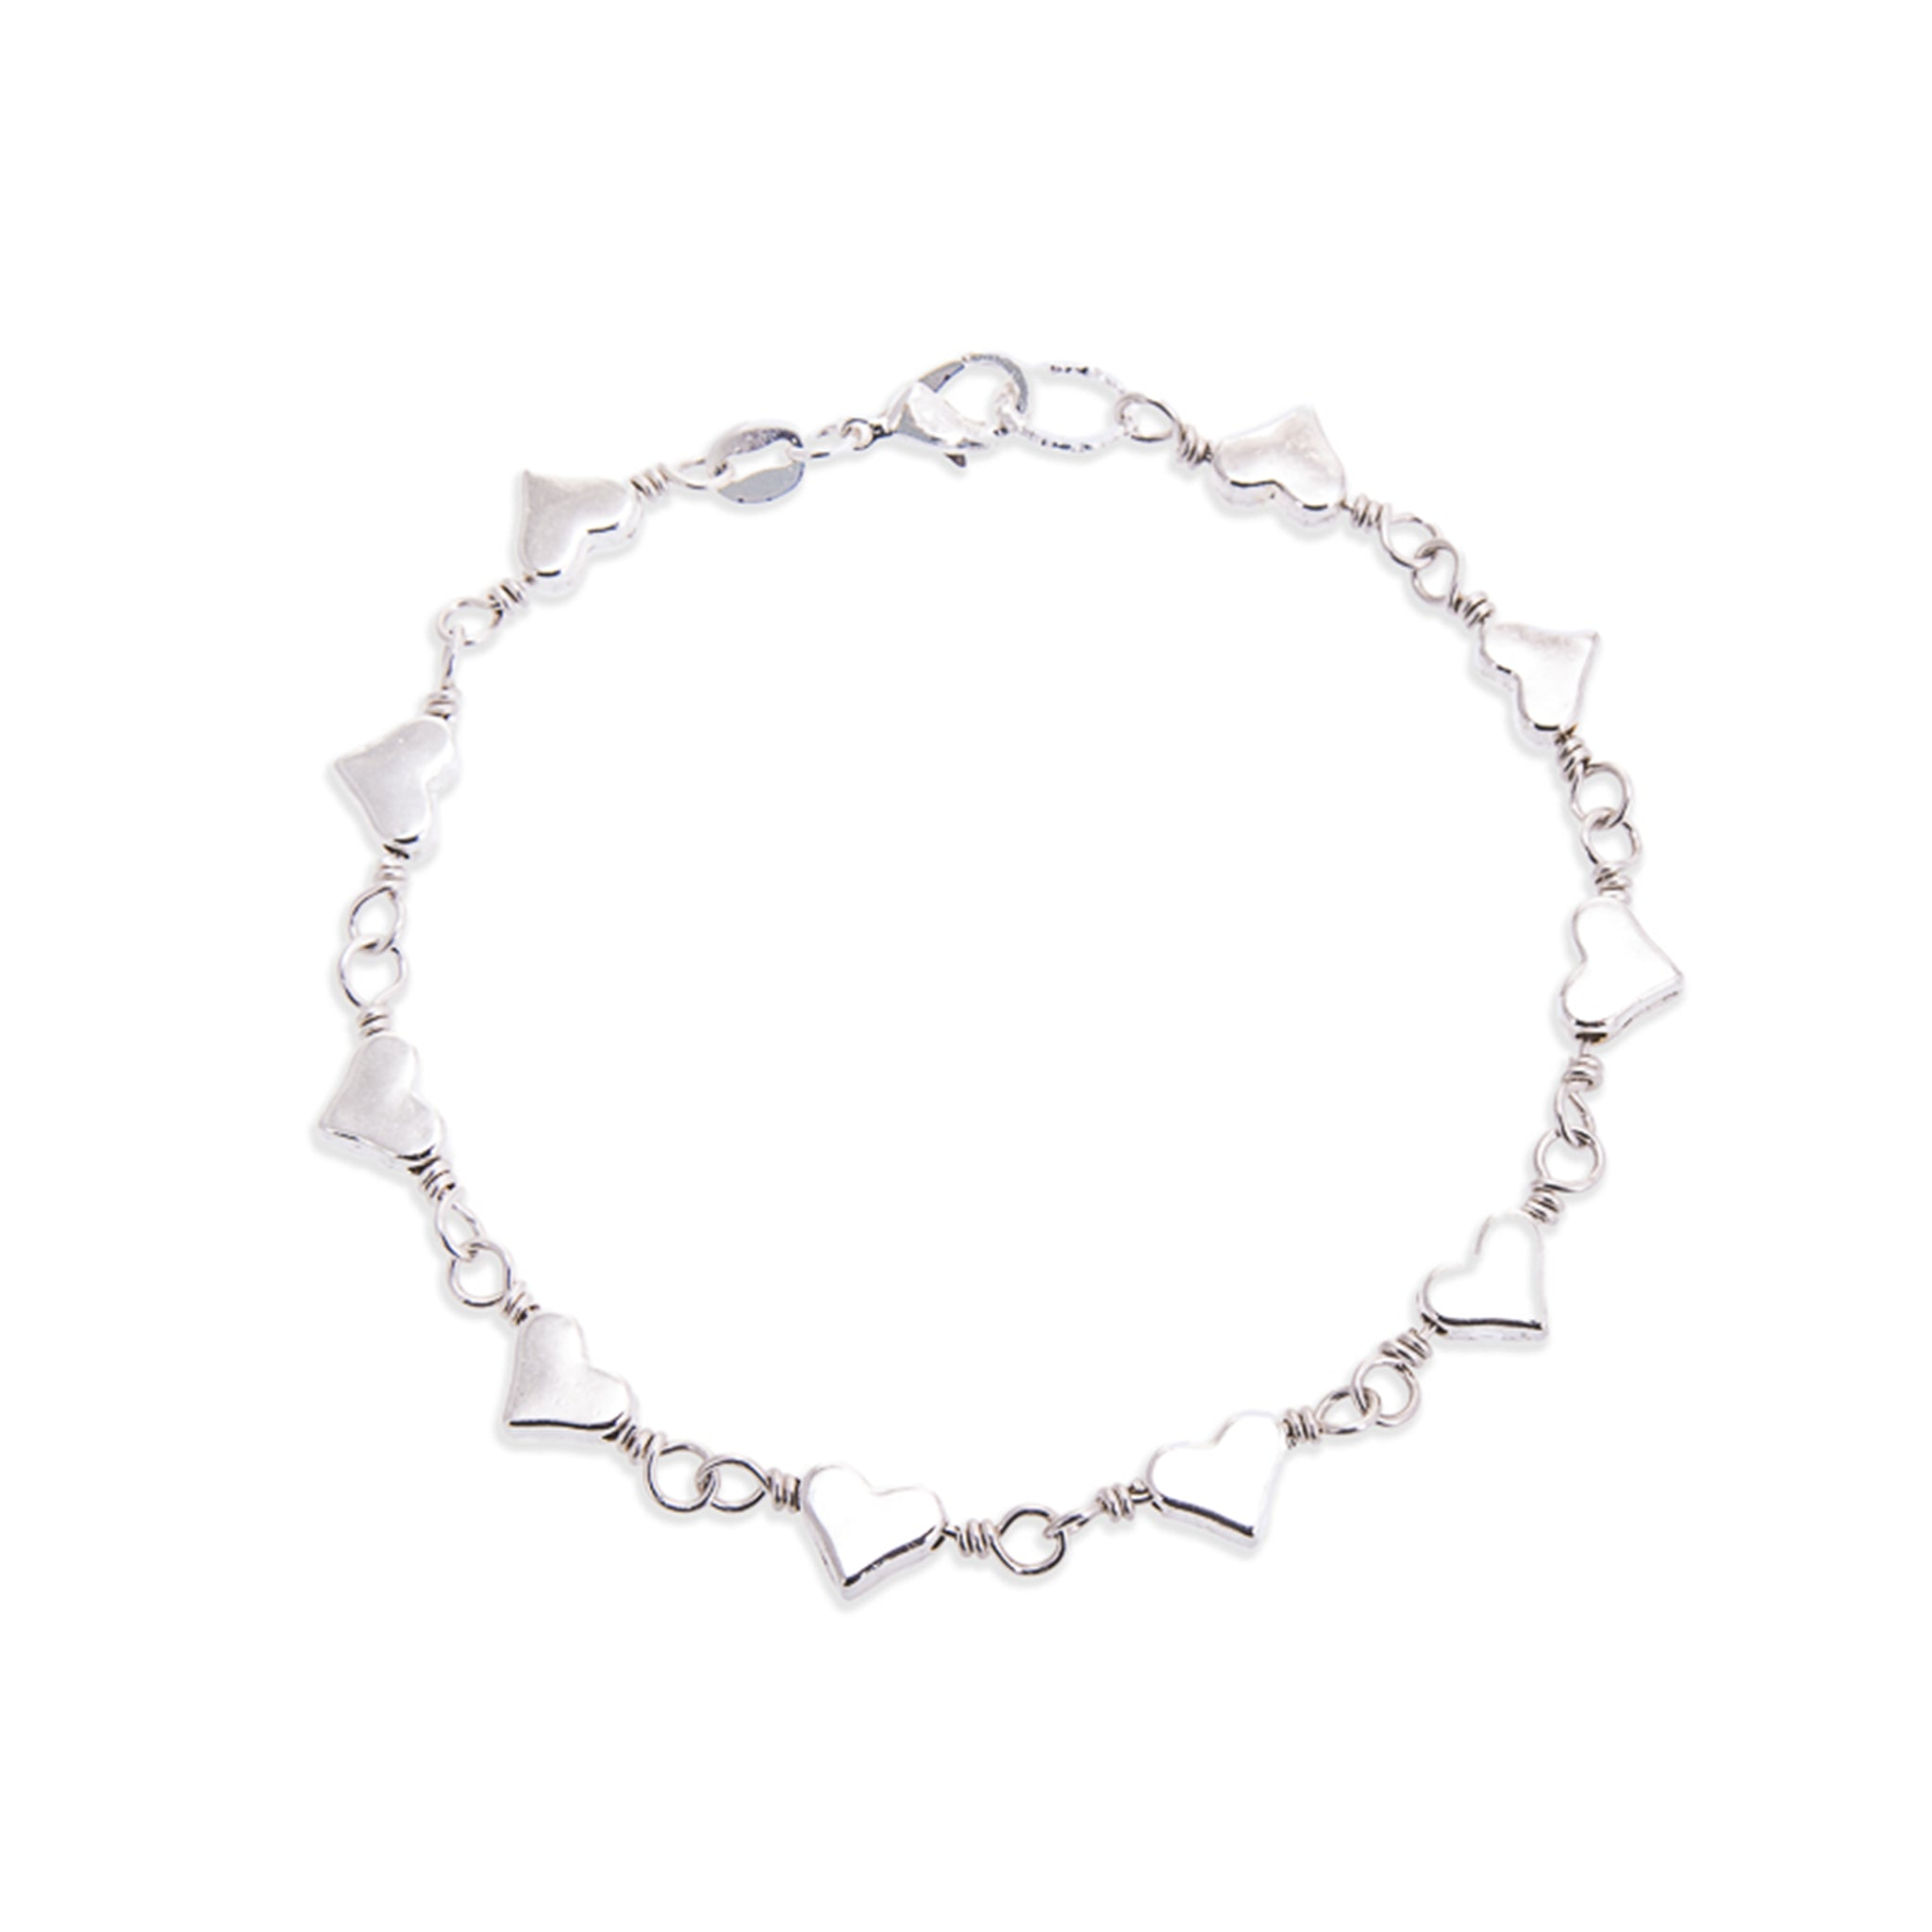 Christmas Gifts for Her - Handmade Silver Heart Bracelet - Swanky Collection